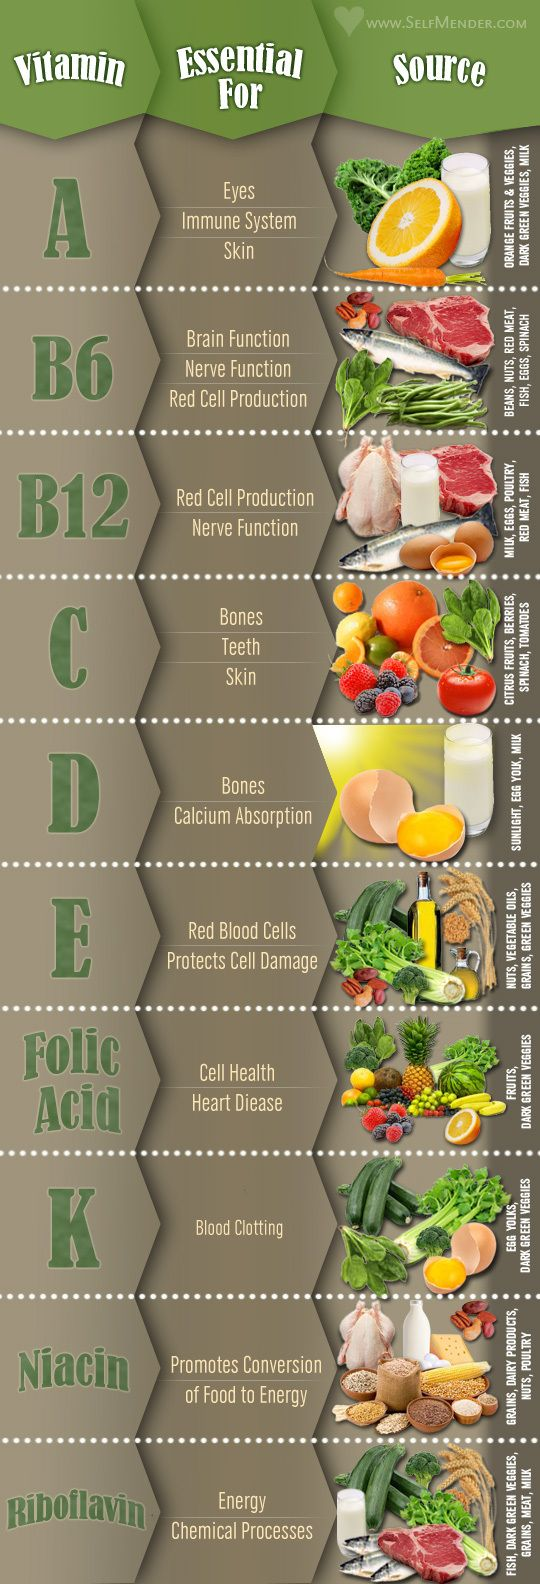 Vitamins - What they do and where to find them.